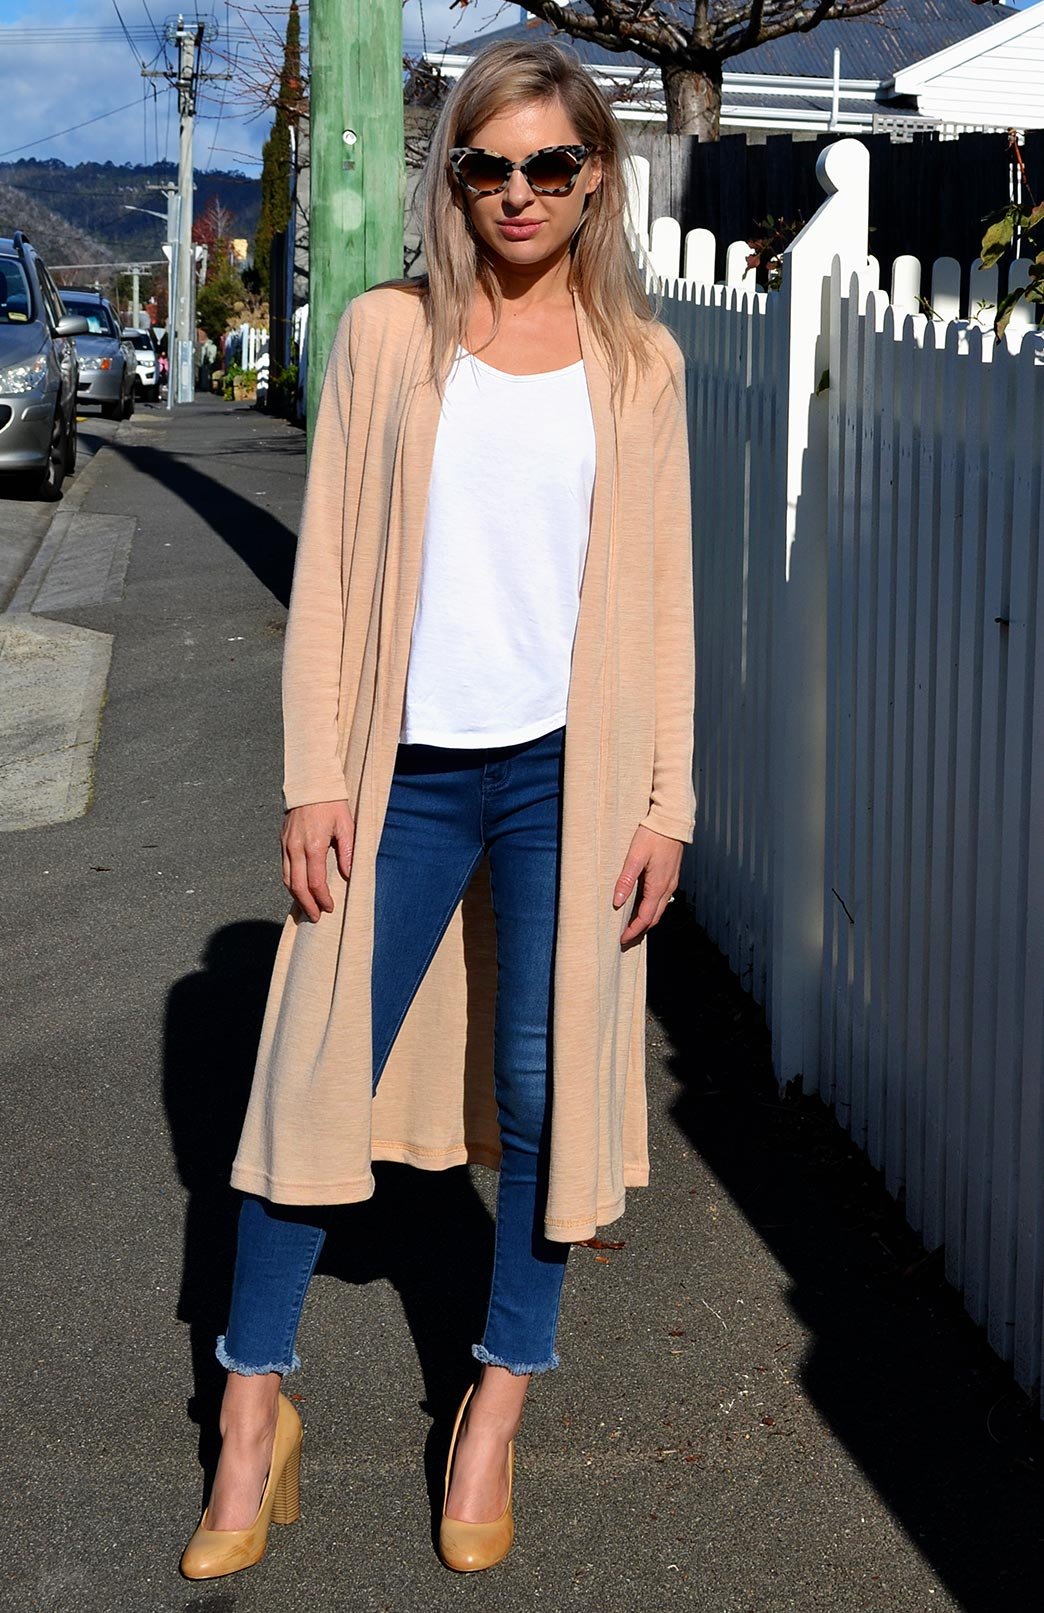 Long Drape Cardigan - Heavyweight - Women's Merino Wool Heavy Weight Long Drape Cardigan - Smitten Merino Tasmania Australia